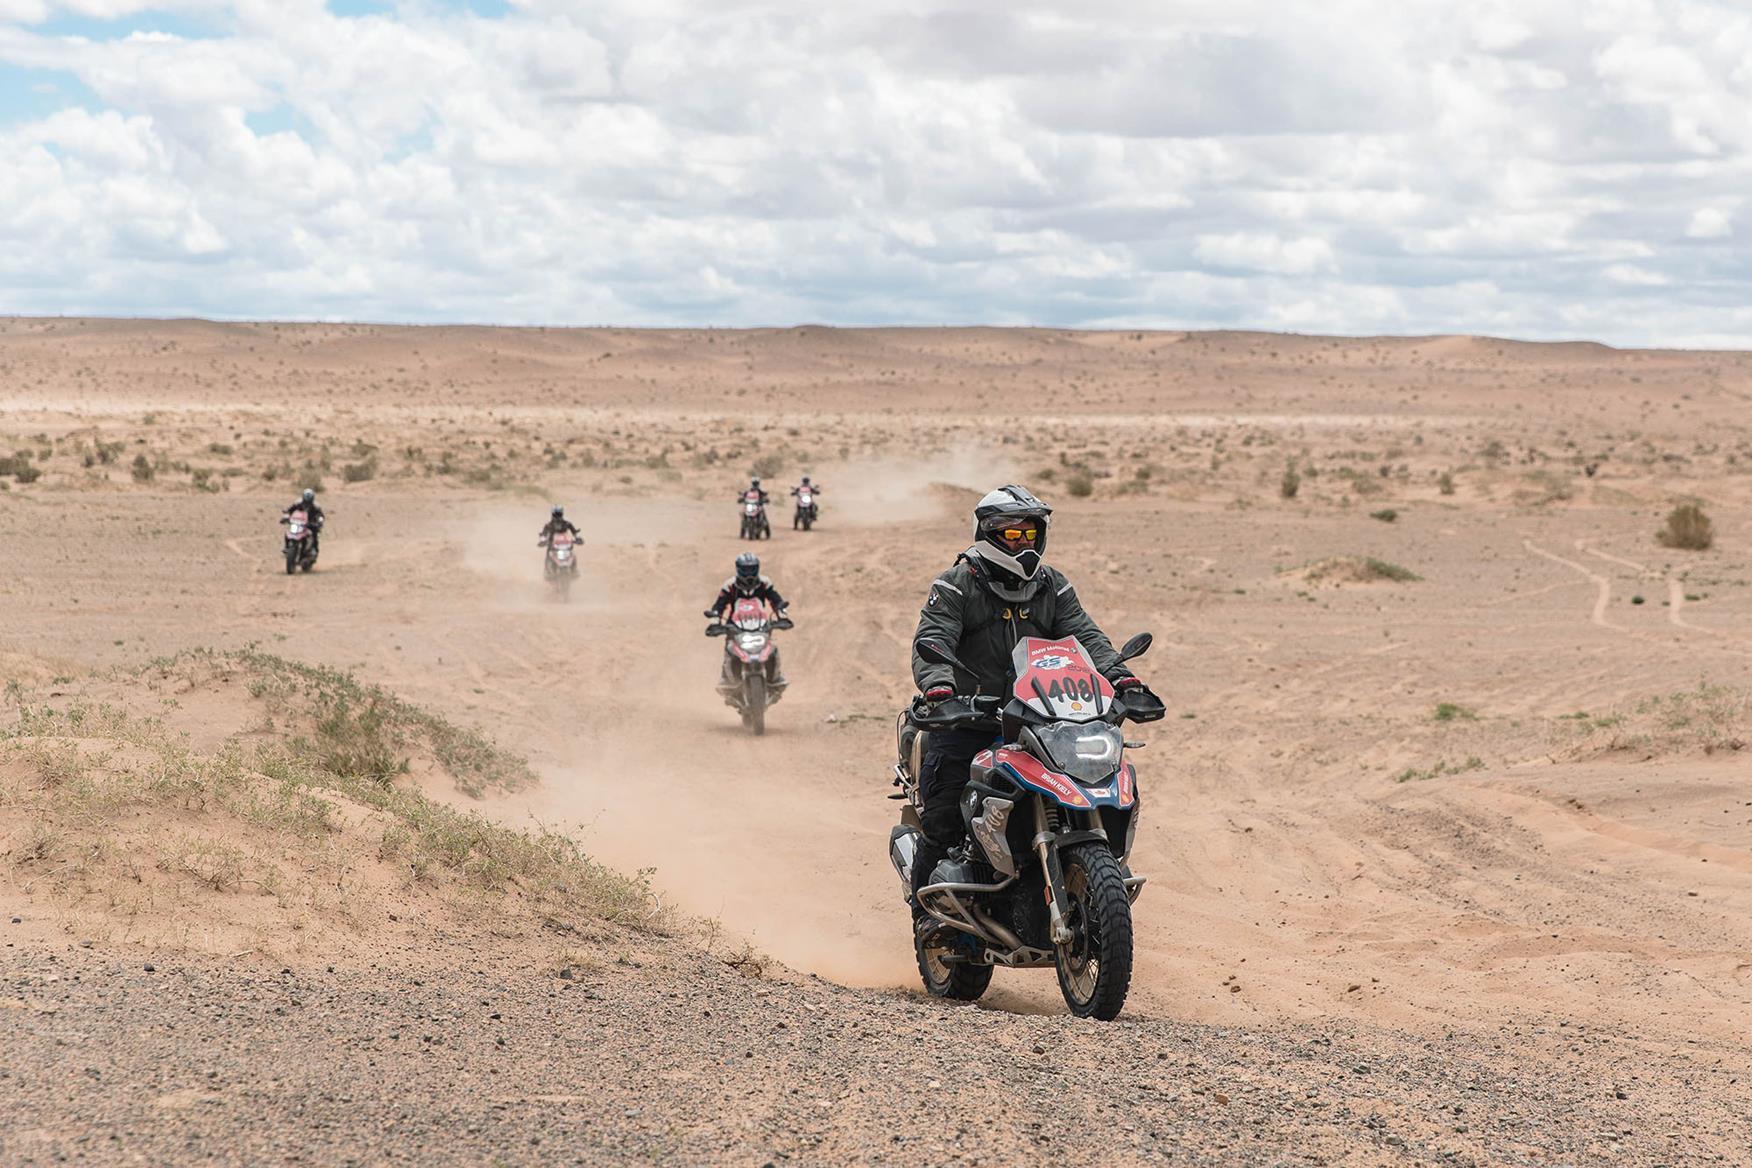 Action from the 2018 BMW GS Trophy in Mongolia